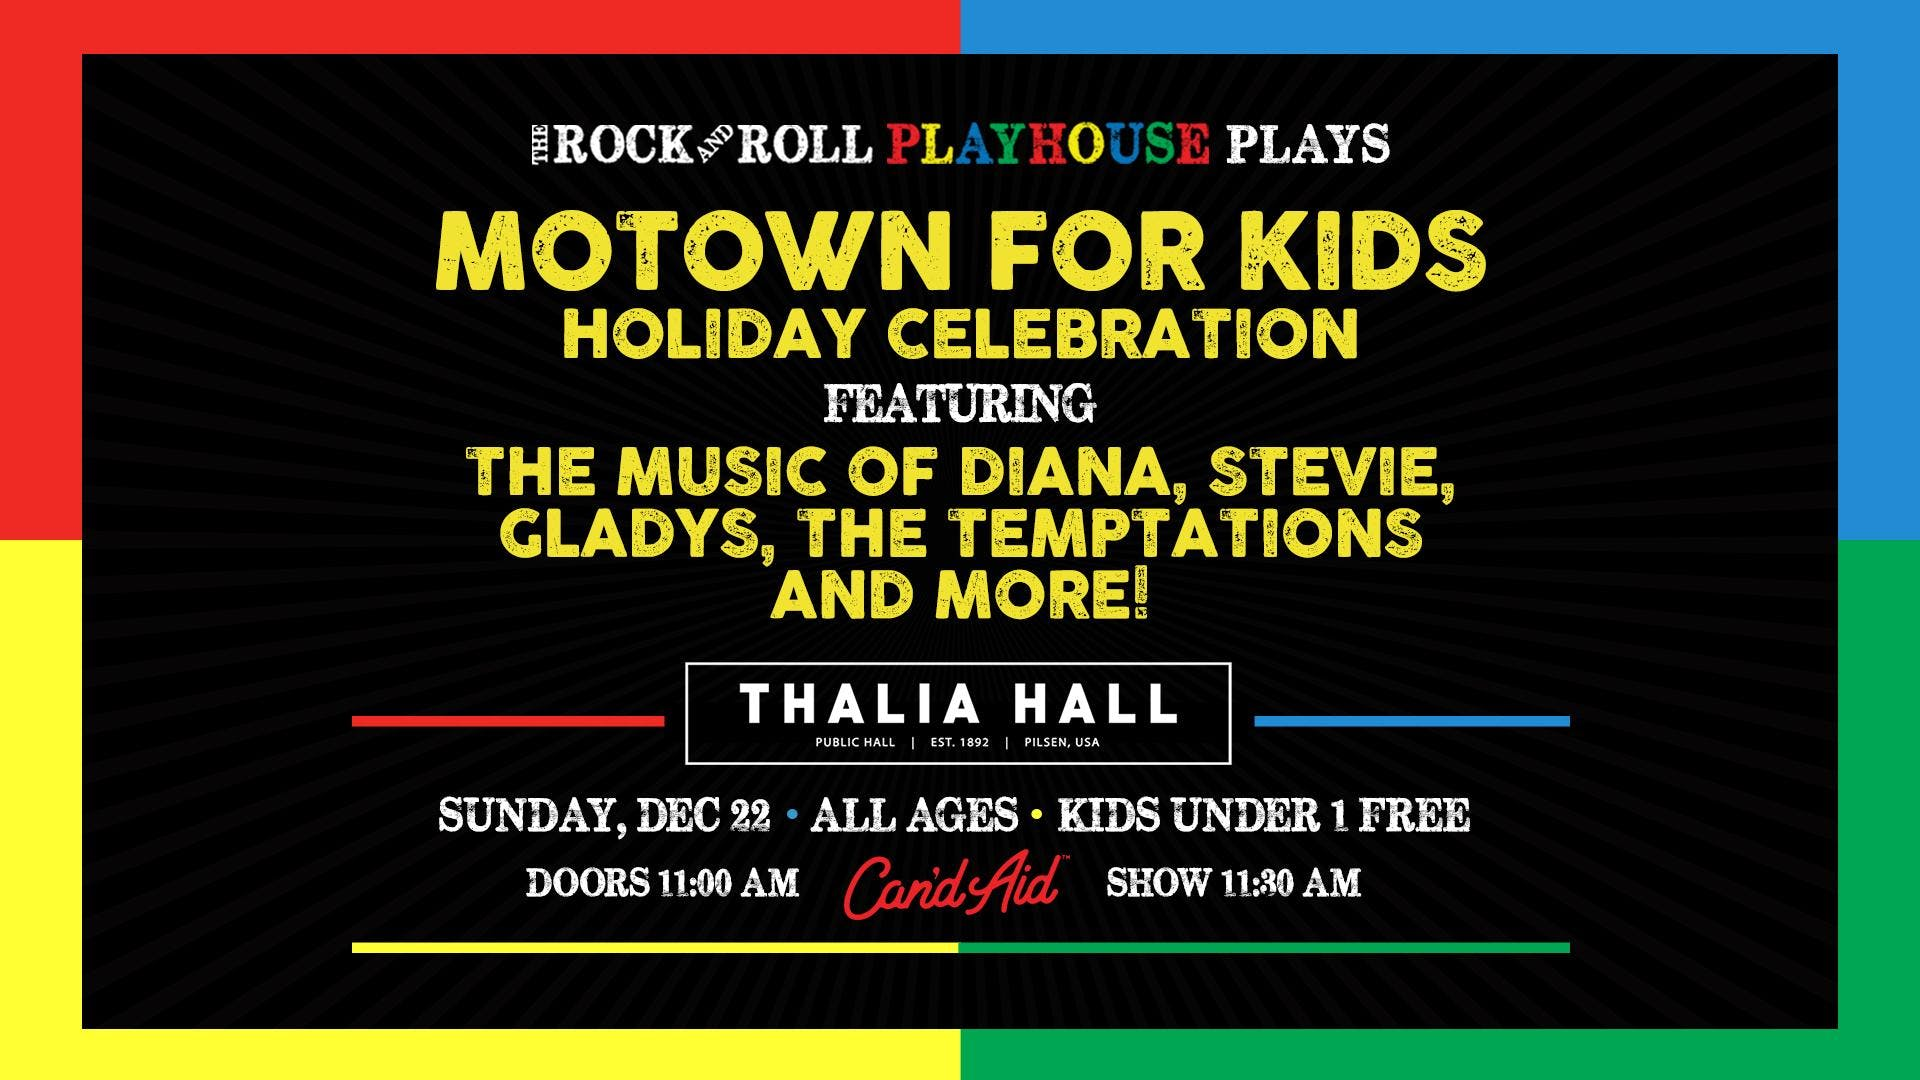 The Rock and Roll Playhouse presents The Motown for Kids Holiday Celebration